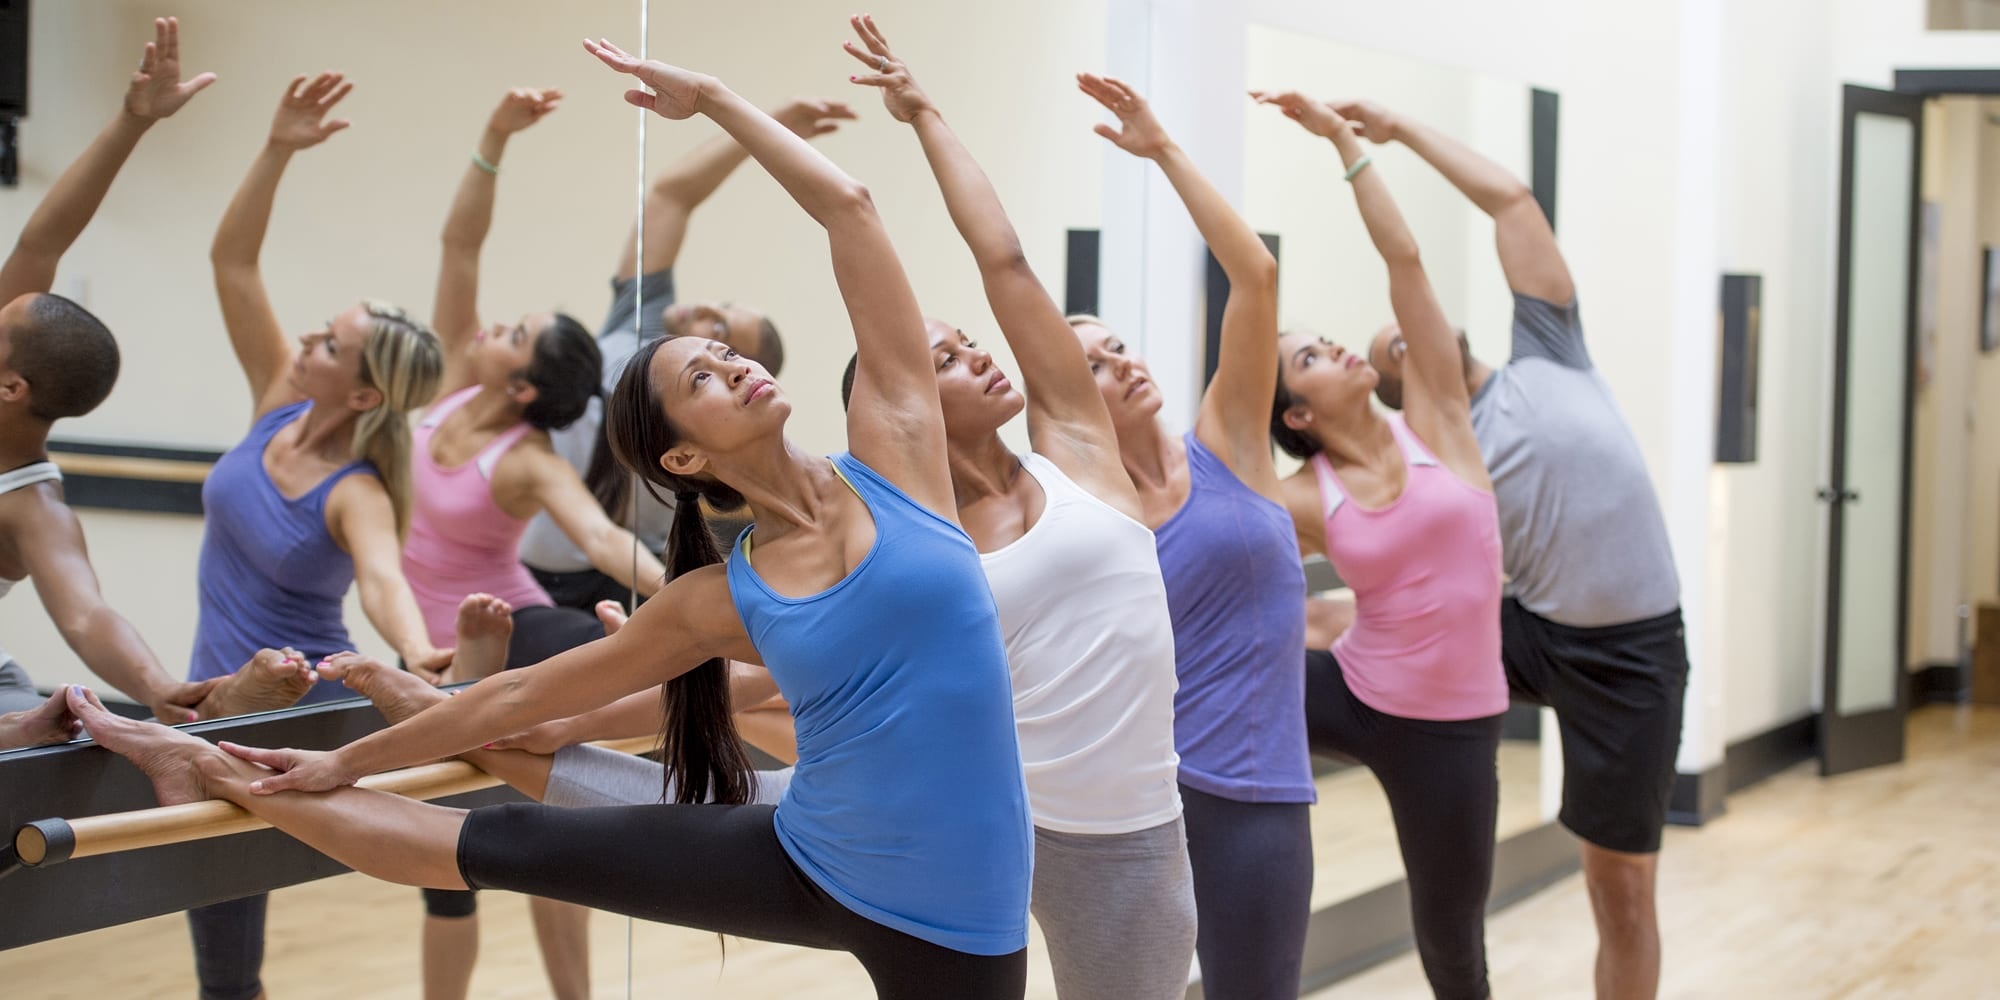 Is Barre A Good Way To Lose Weight?